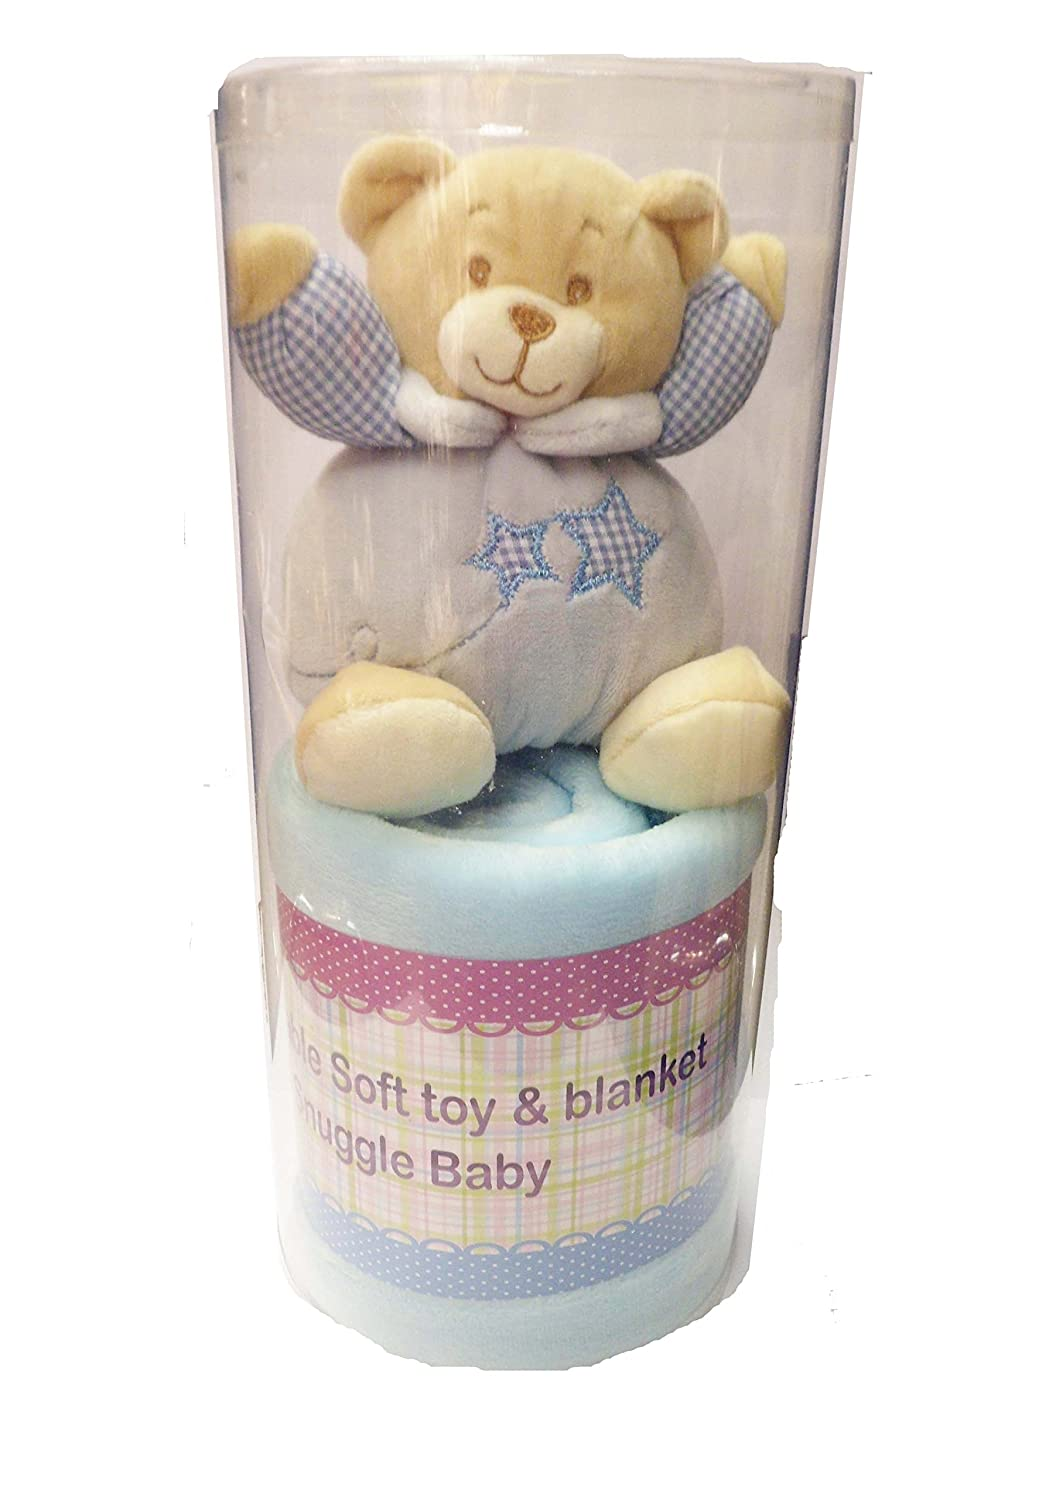 Boys Blue Adorable Soft Teddy Bear & Blanket - Boxed Gift Set Baby Best Buys